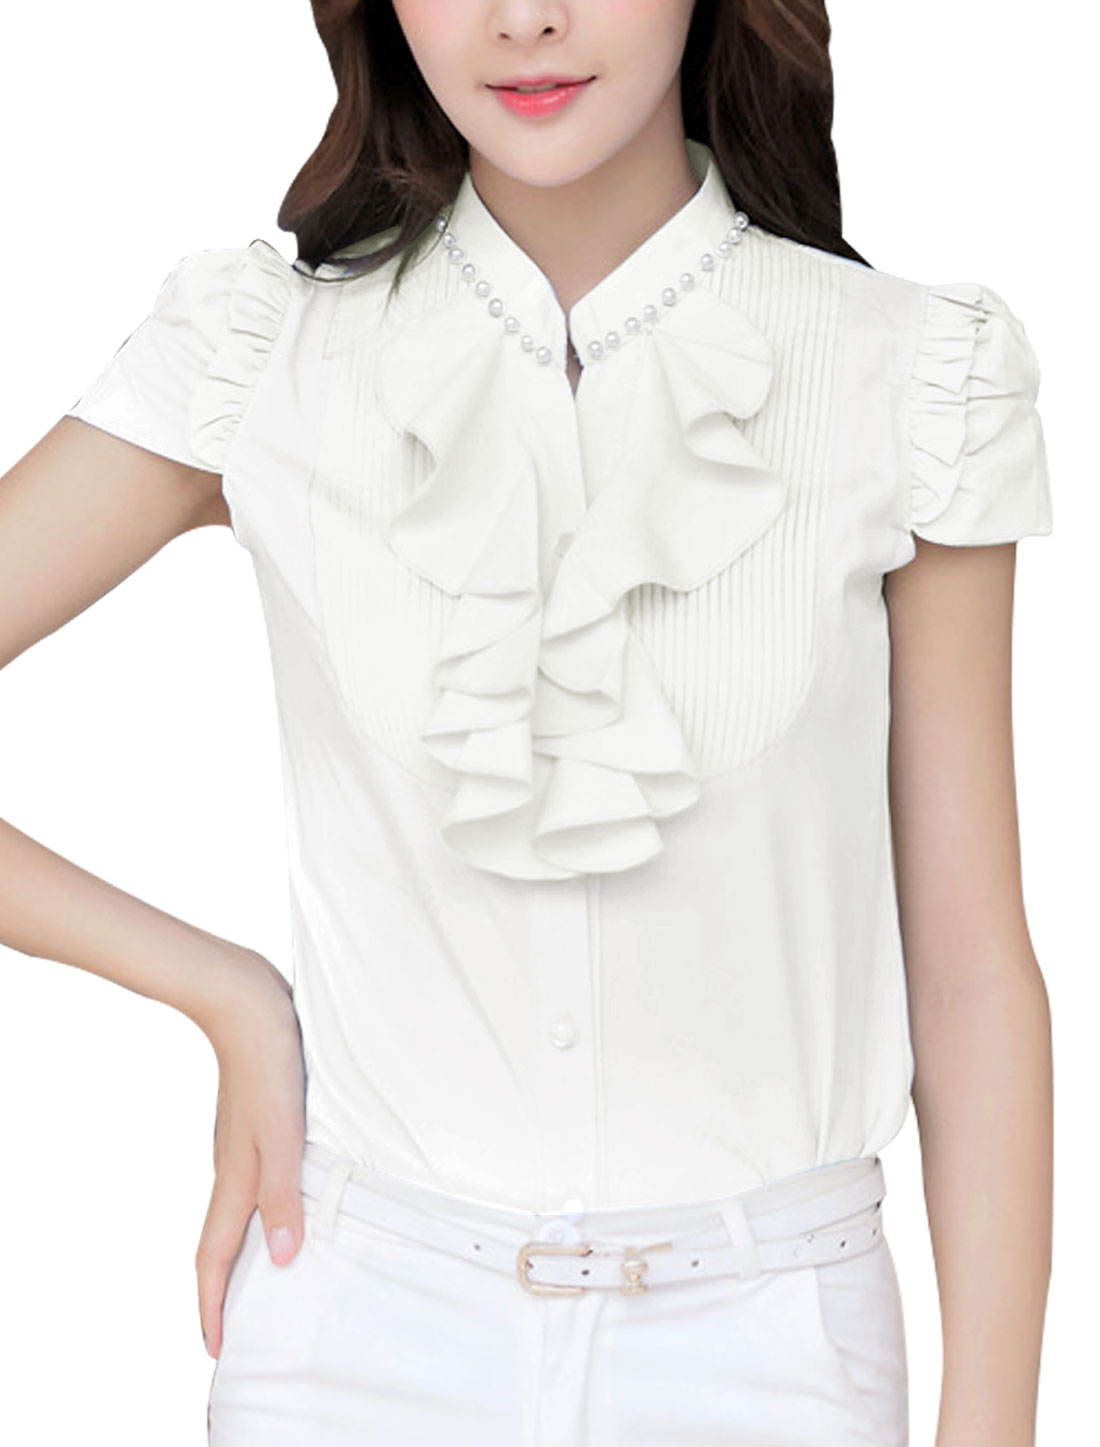 Lady Stand Collar Single Breasted Pleated w Ruffles Front Shirt White M